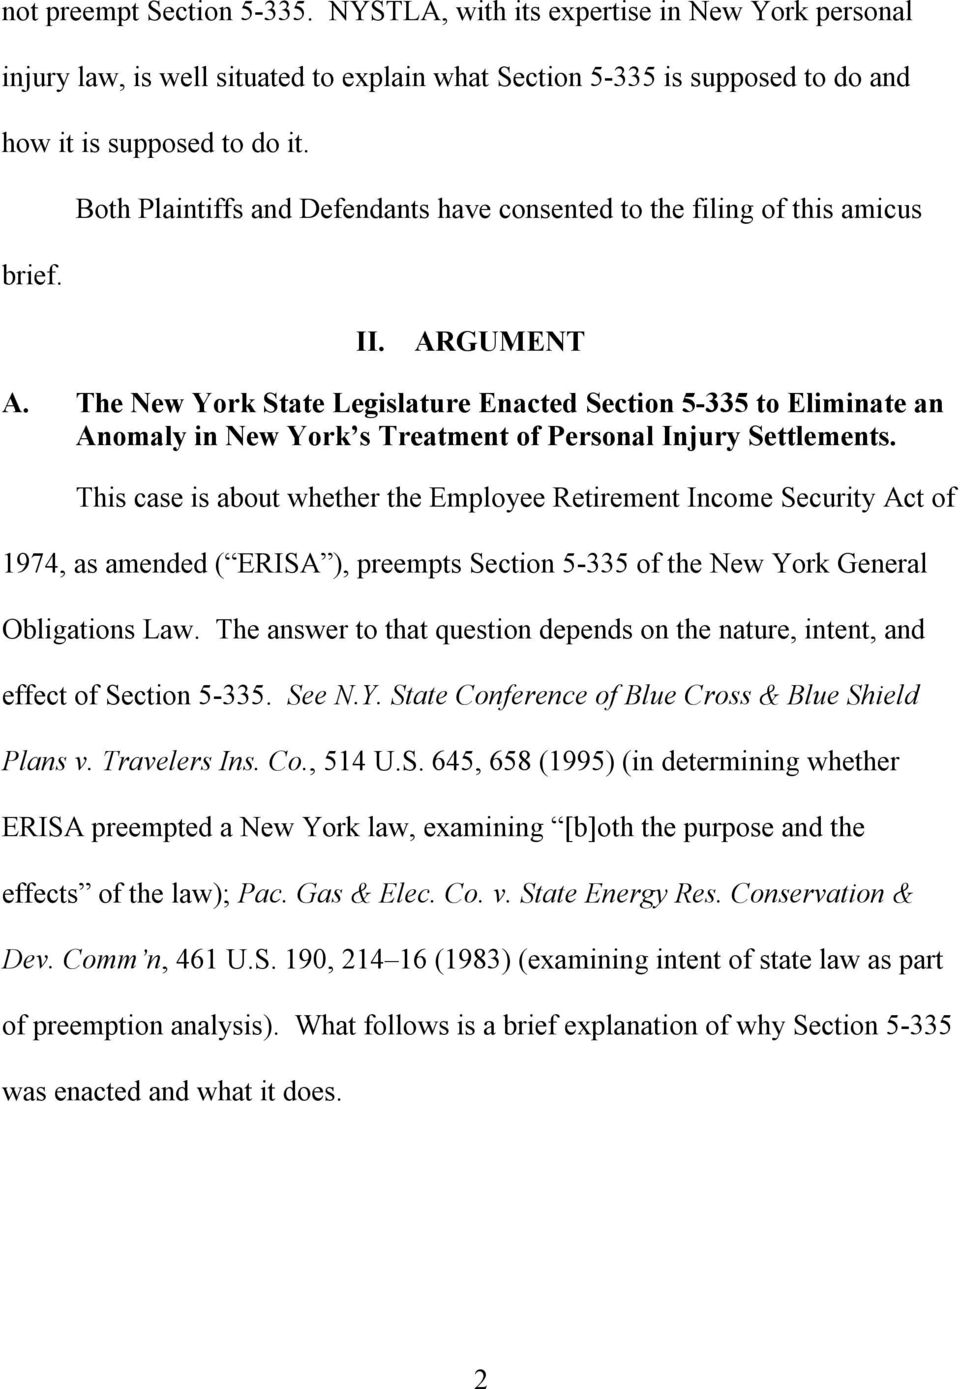 The New York State Legislature Enacted Section 5-335 to Eliminate an Anomaly in New York s Treatment of Personal Injury Settlements.